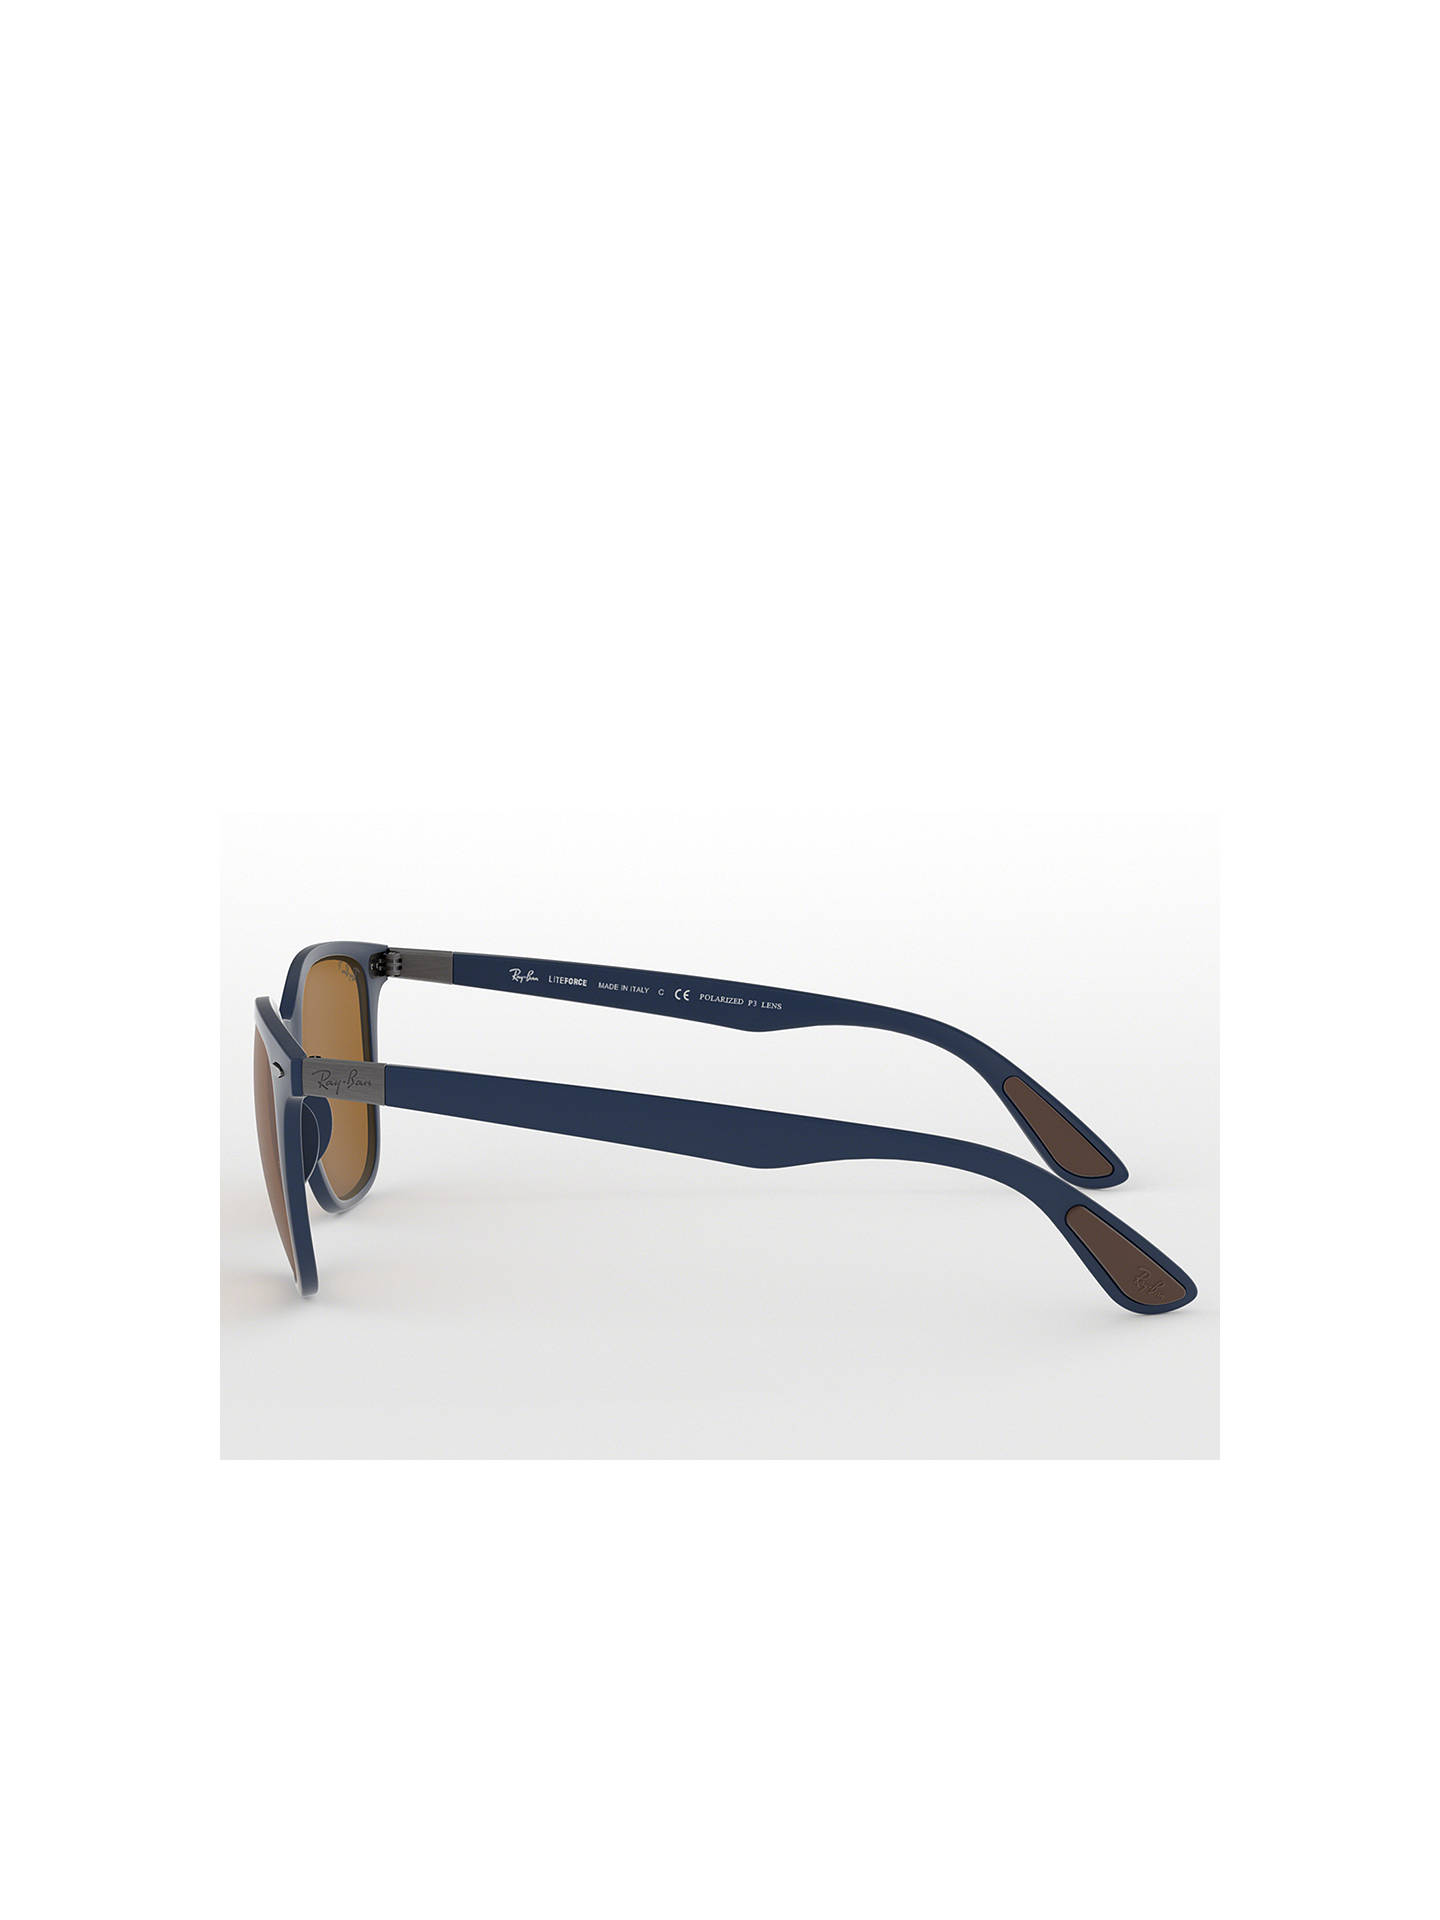 5b58f79a9f7 uk ray ban 3386 polarized fe218 d6e44  france buyray ban rb4297 wayfarer  polarised sunglasses blue brown online at johnlewis 588c3 b2e49